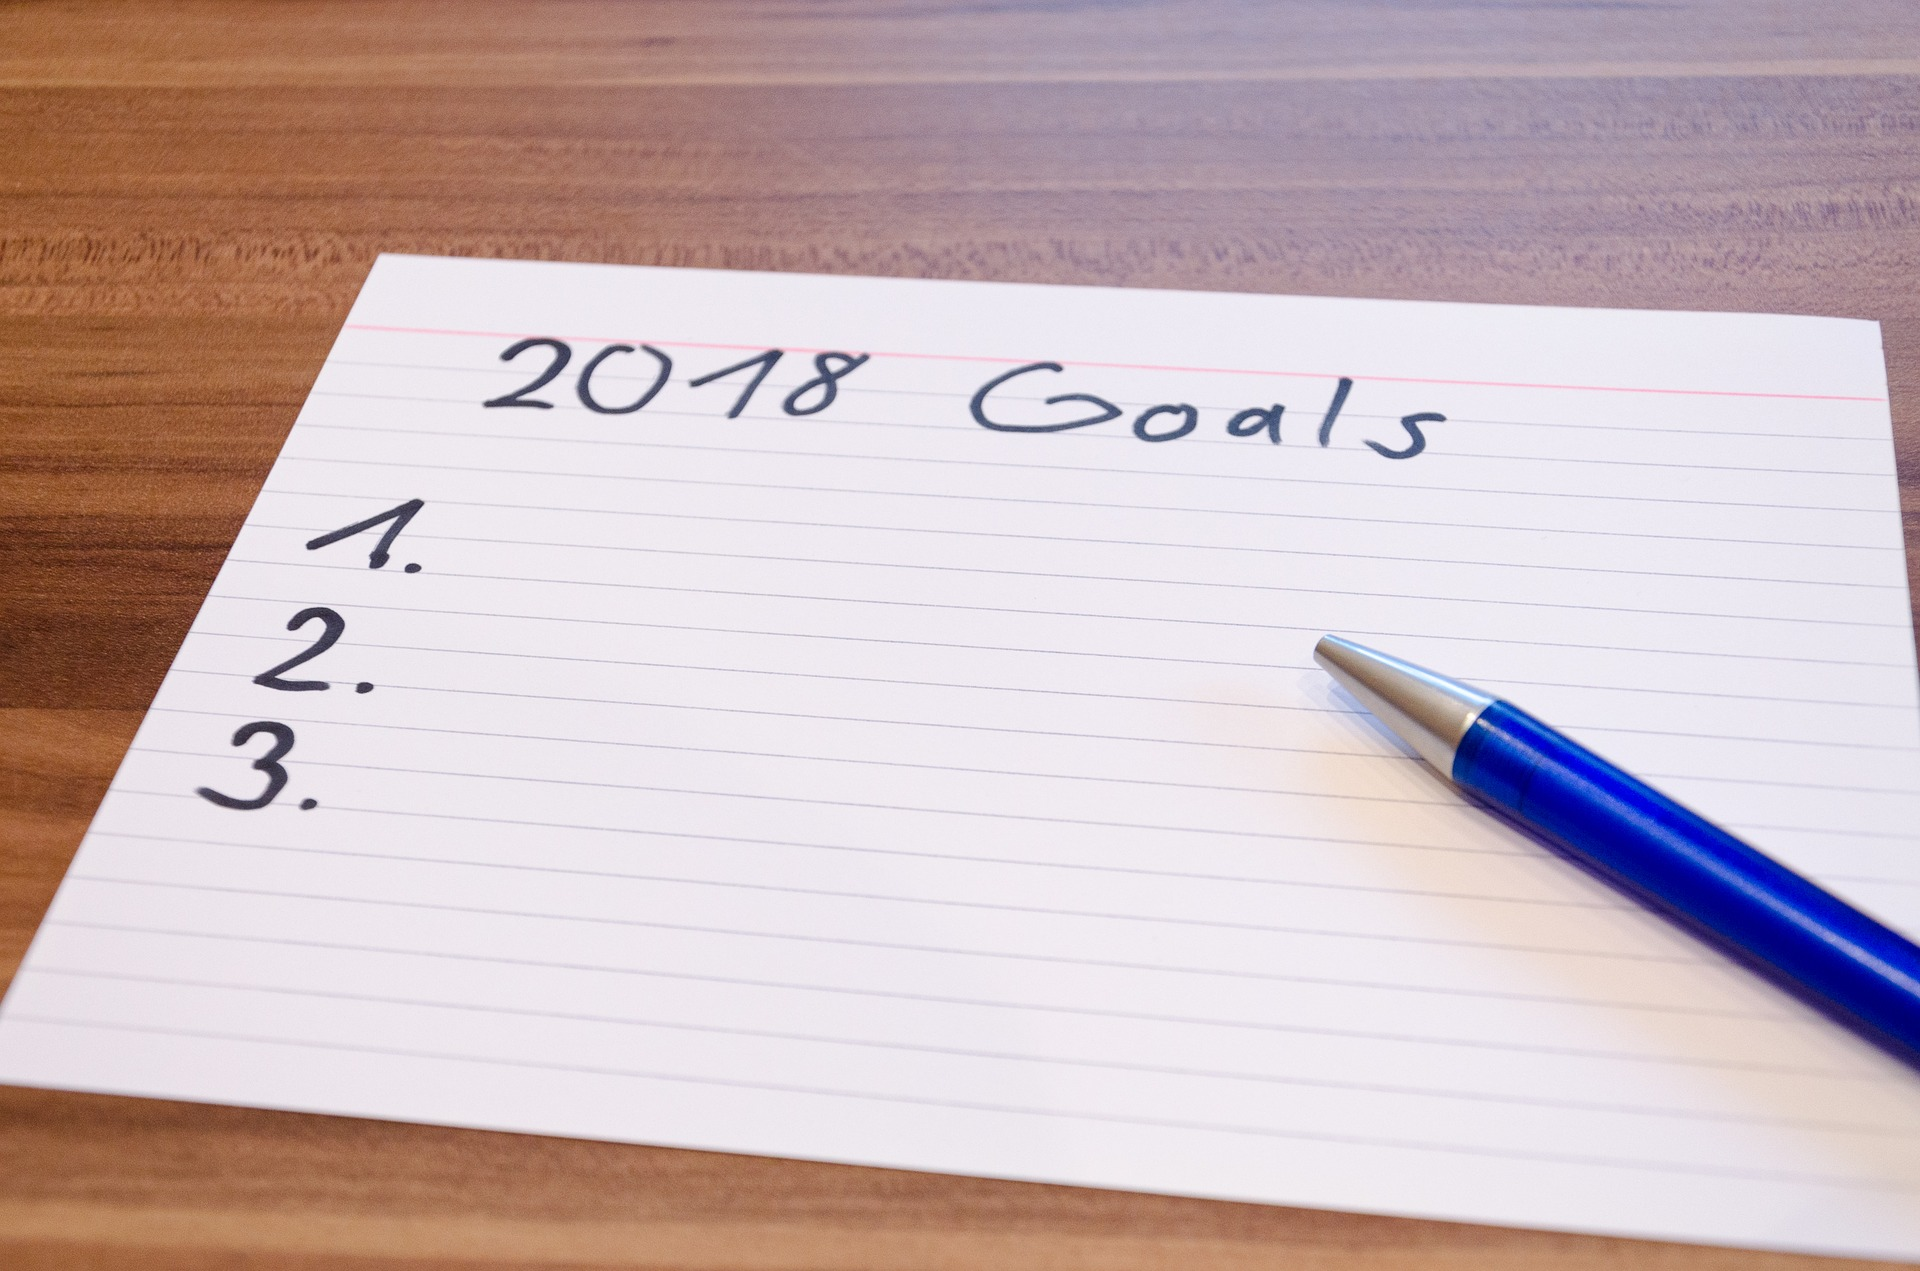 New Year Resolutions for patients on their fertility journey. Fertility Goal Checklist for the New Year.